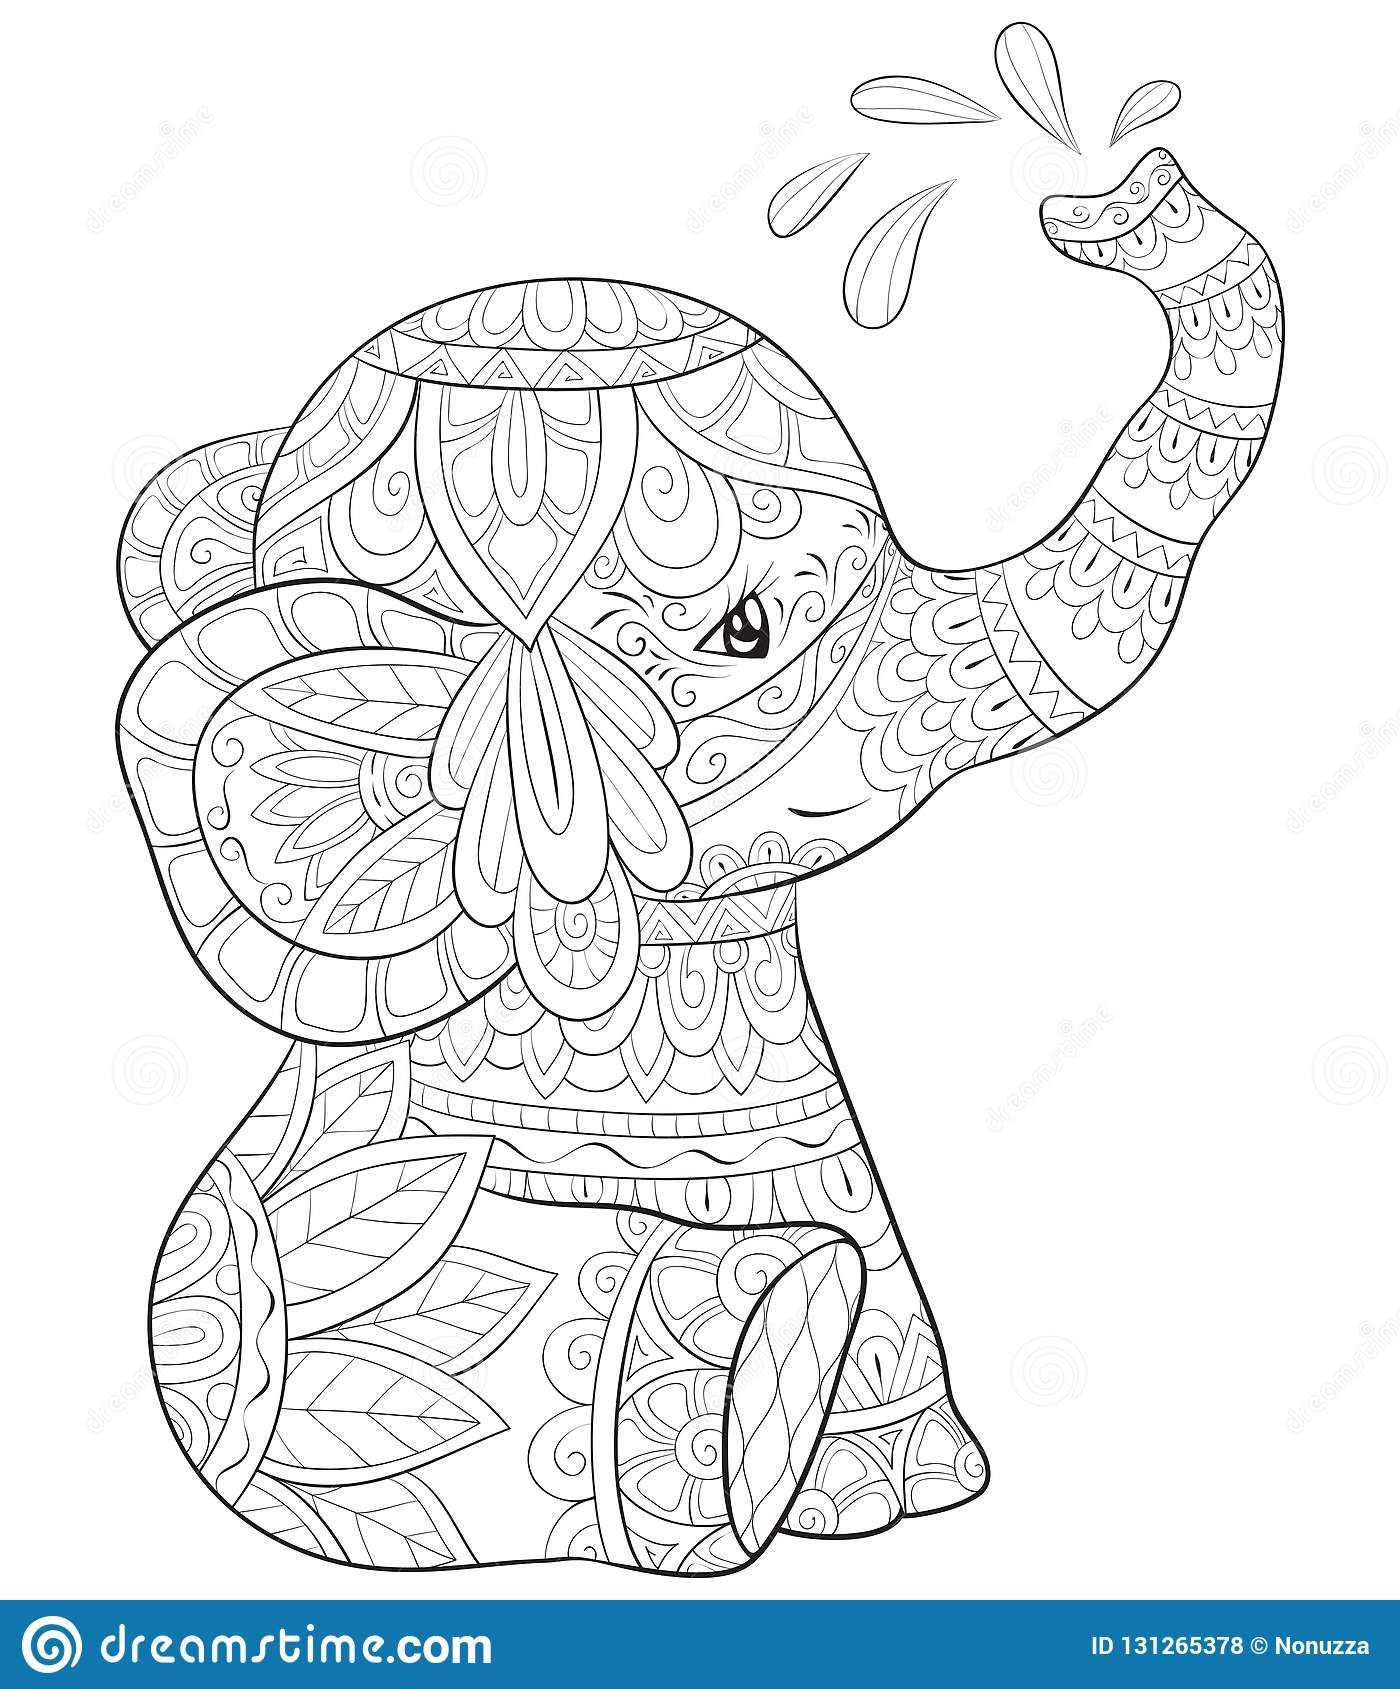 Adult Coloring Book Page A Cute Elephant Image For